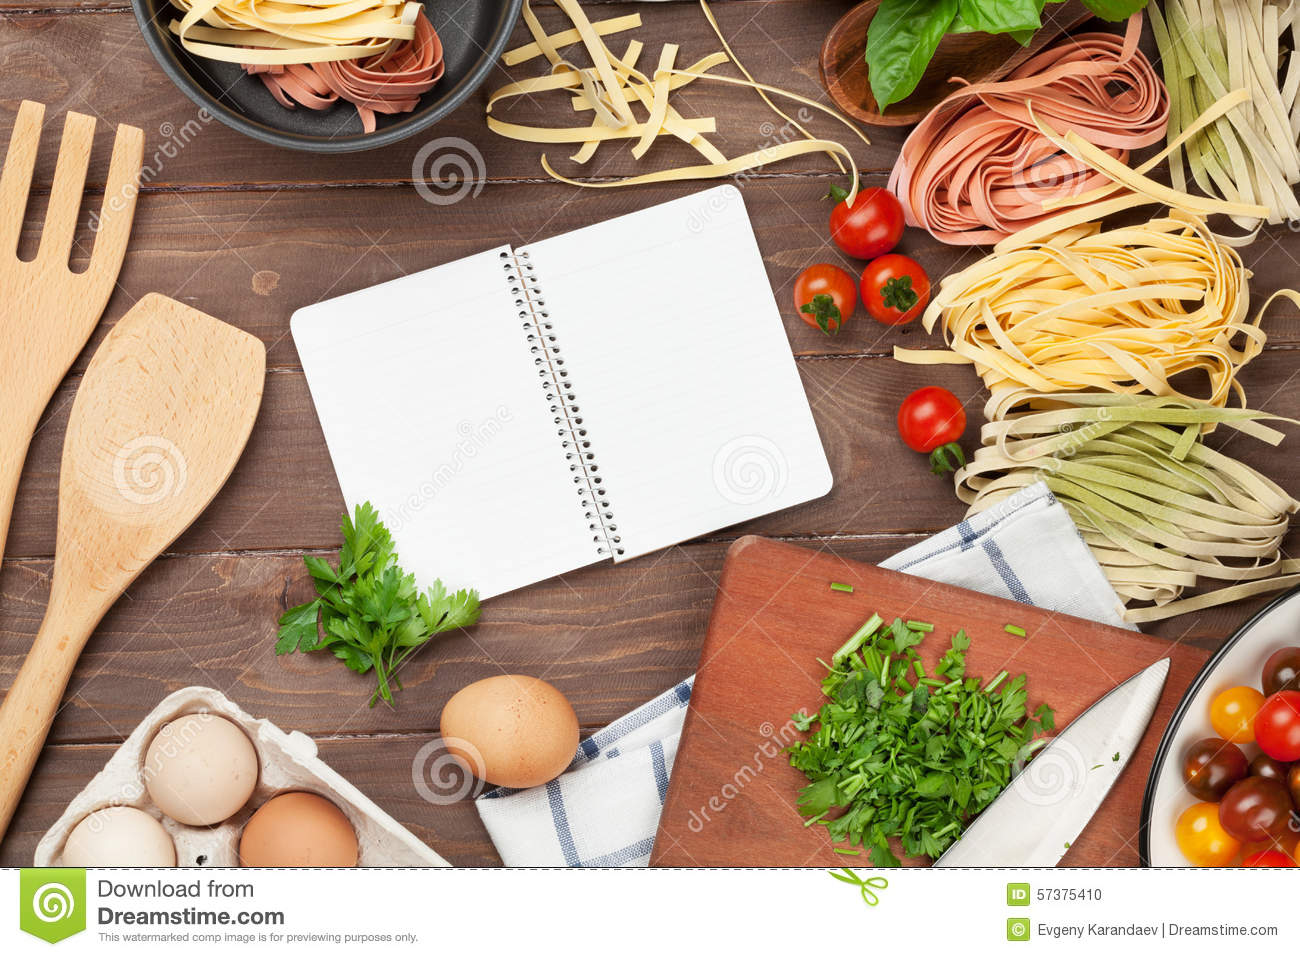 Pasta cooking ingredients and utensils on wooden table for Table utensils